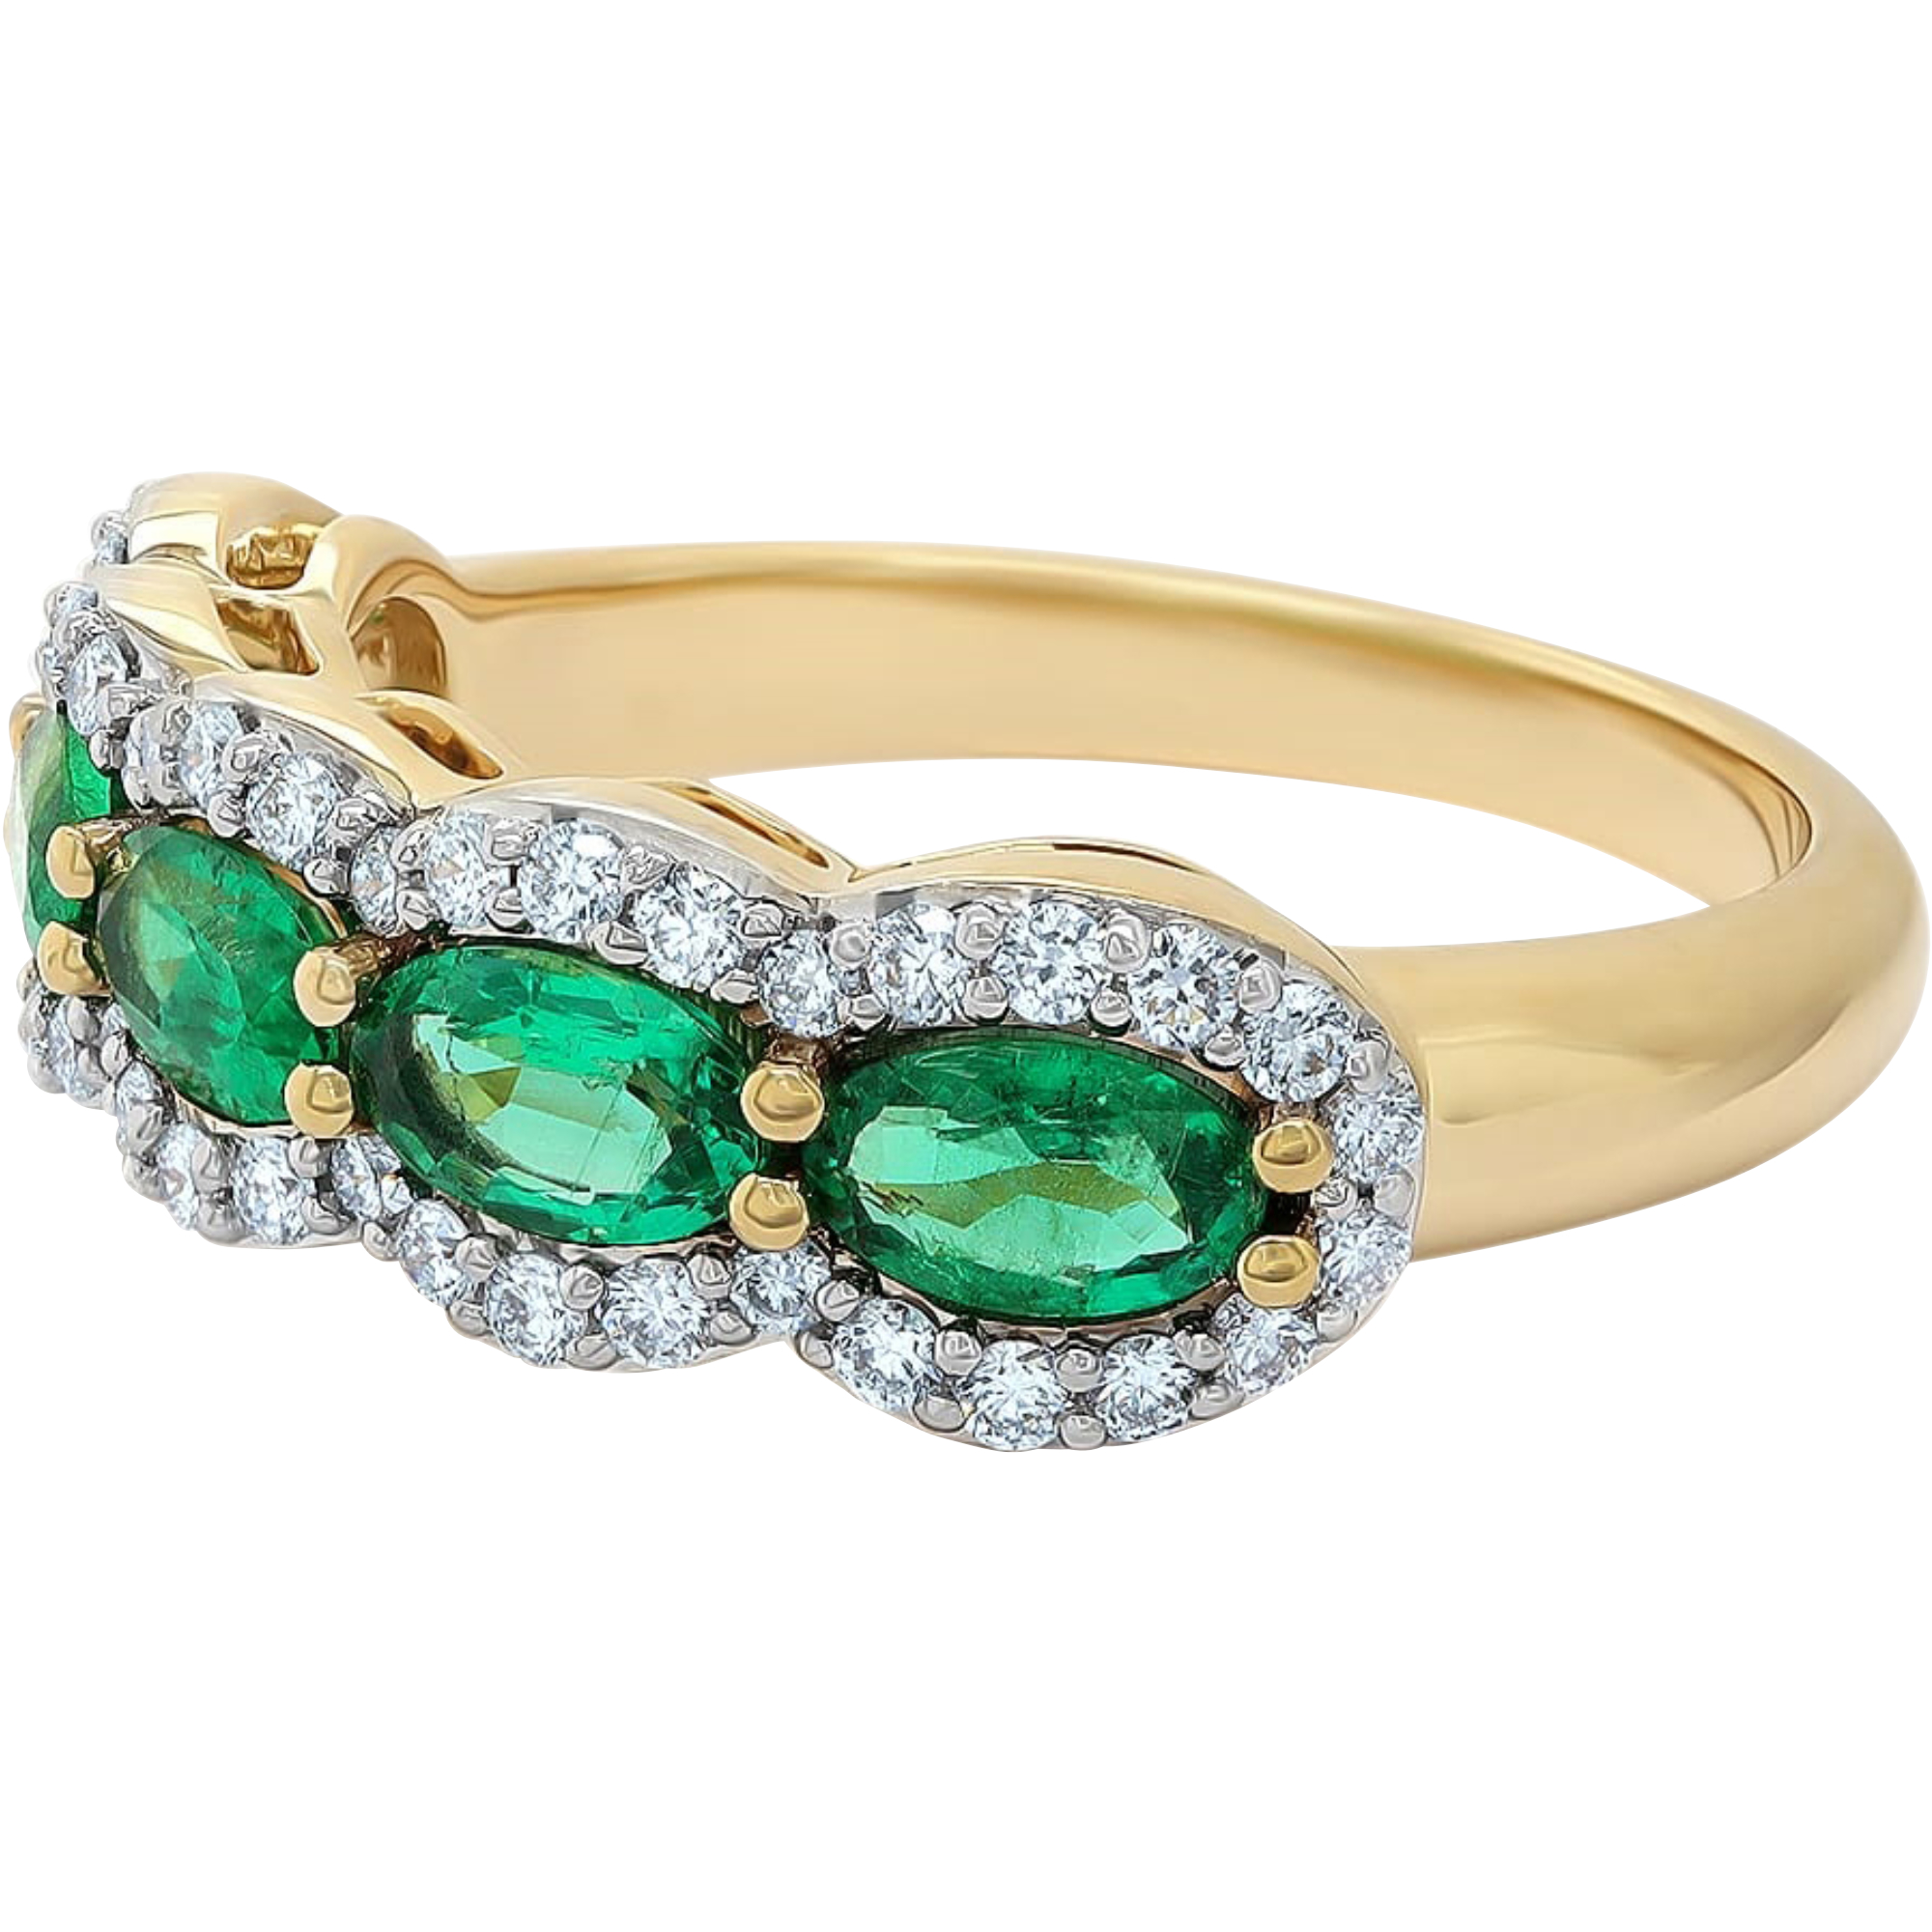 5 Stone Oval Emerald & Diamond Cluster 18ct Yellow Gold Ring